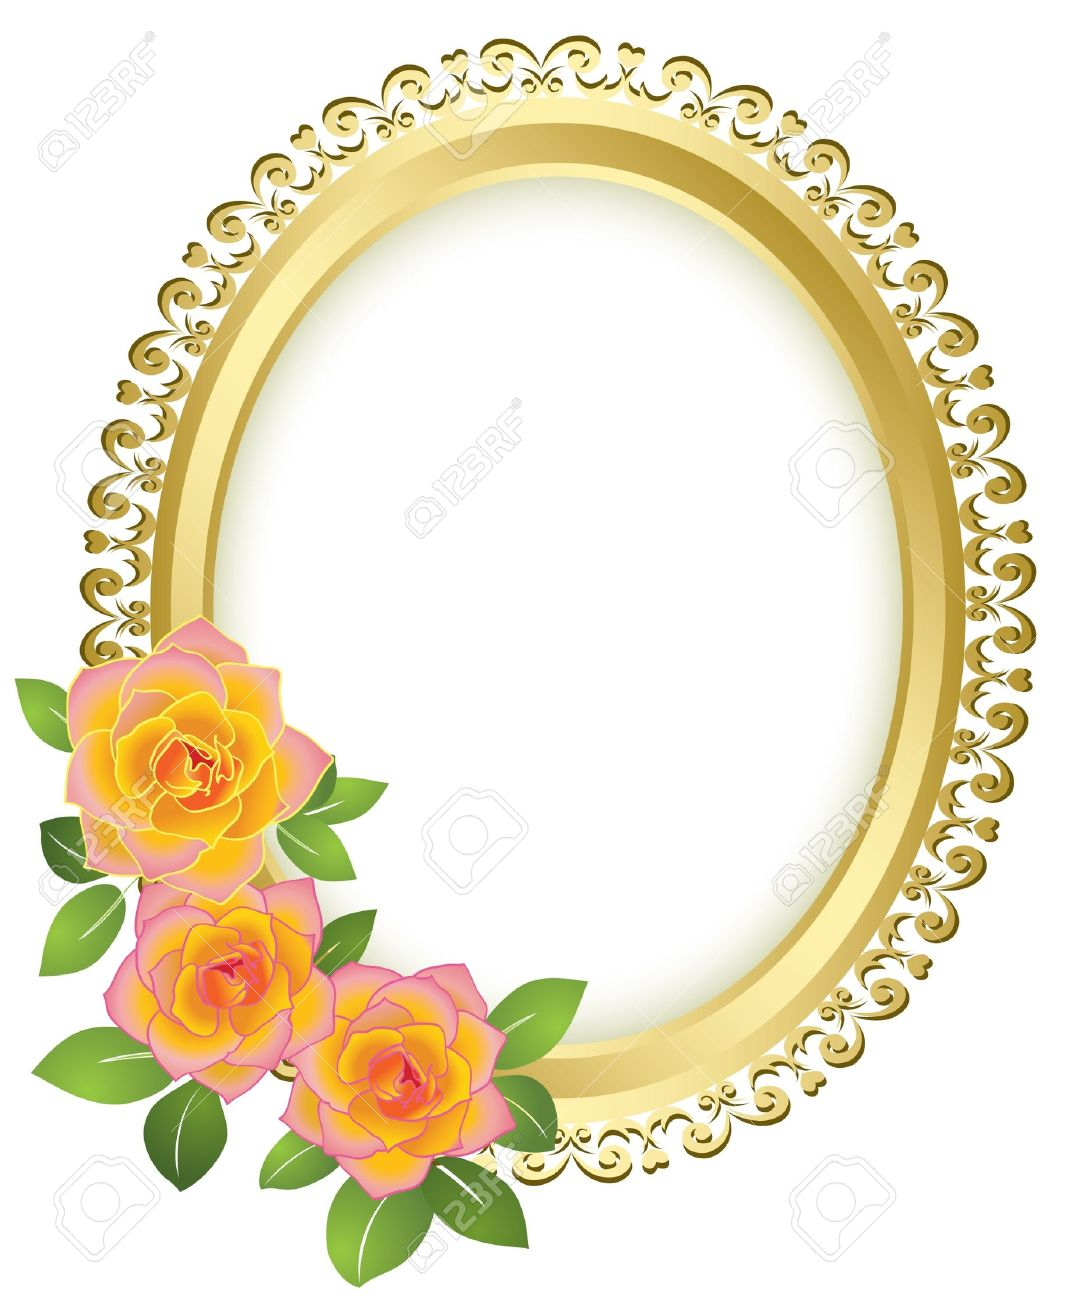 Golden Oval Frame With Flowers - Vector Royalty Free Cliparts ...